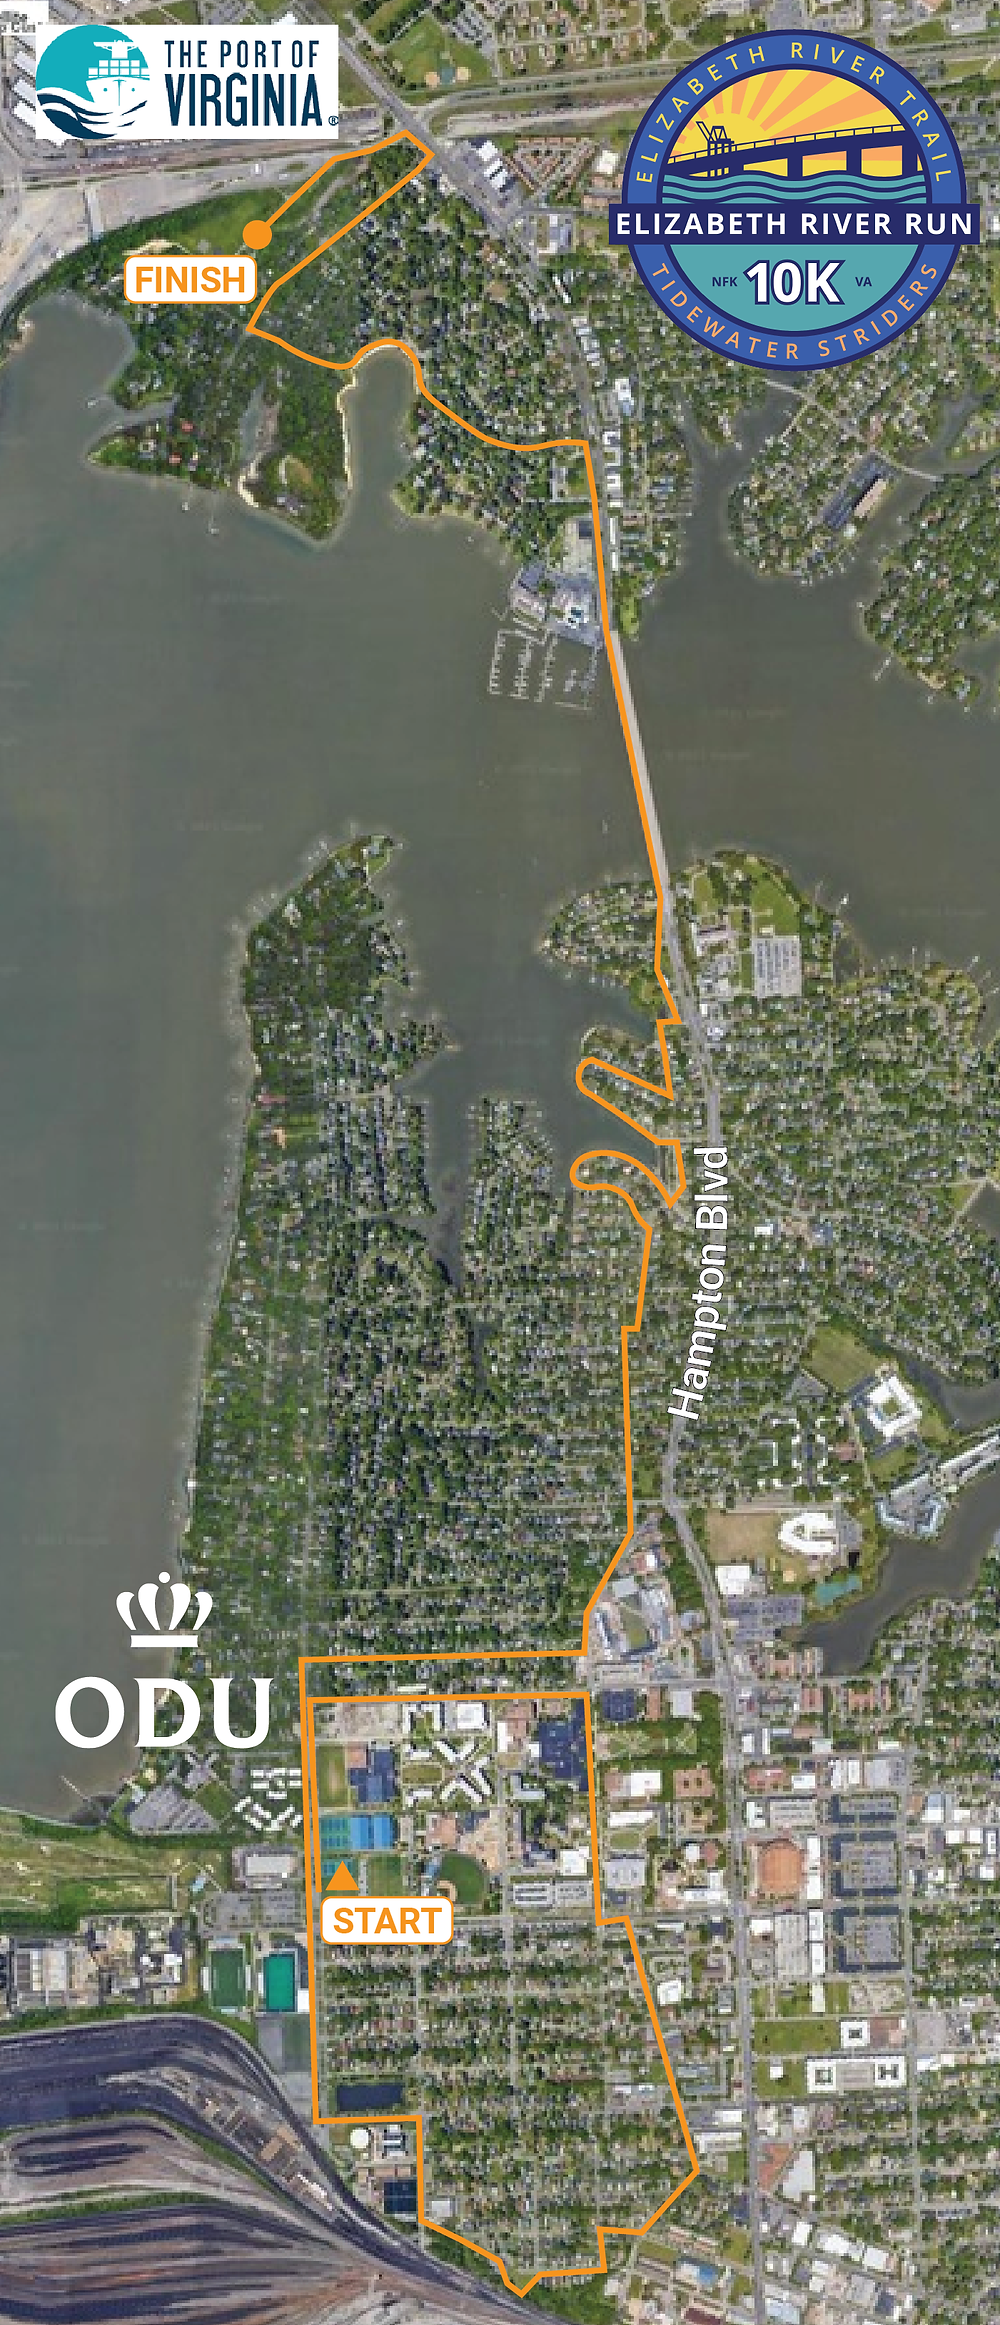 The race course (a yellow line on a satellite image of Norfolk with the logo from above and one from the Port of Virginia in the corner. The course appears to begin up around 43rd St on the ODU campus, loop around as far south as 25th before coming up Hampton Blvd to end in a field on Commonwealth Ave, which is just North of the Hermitage Museum.